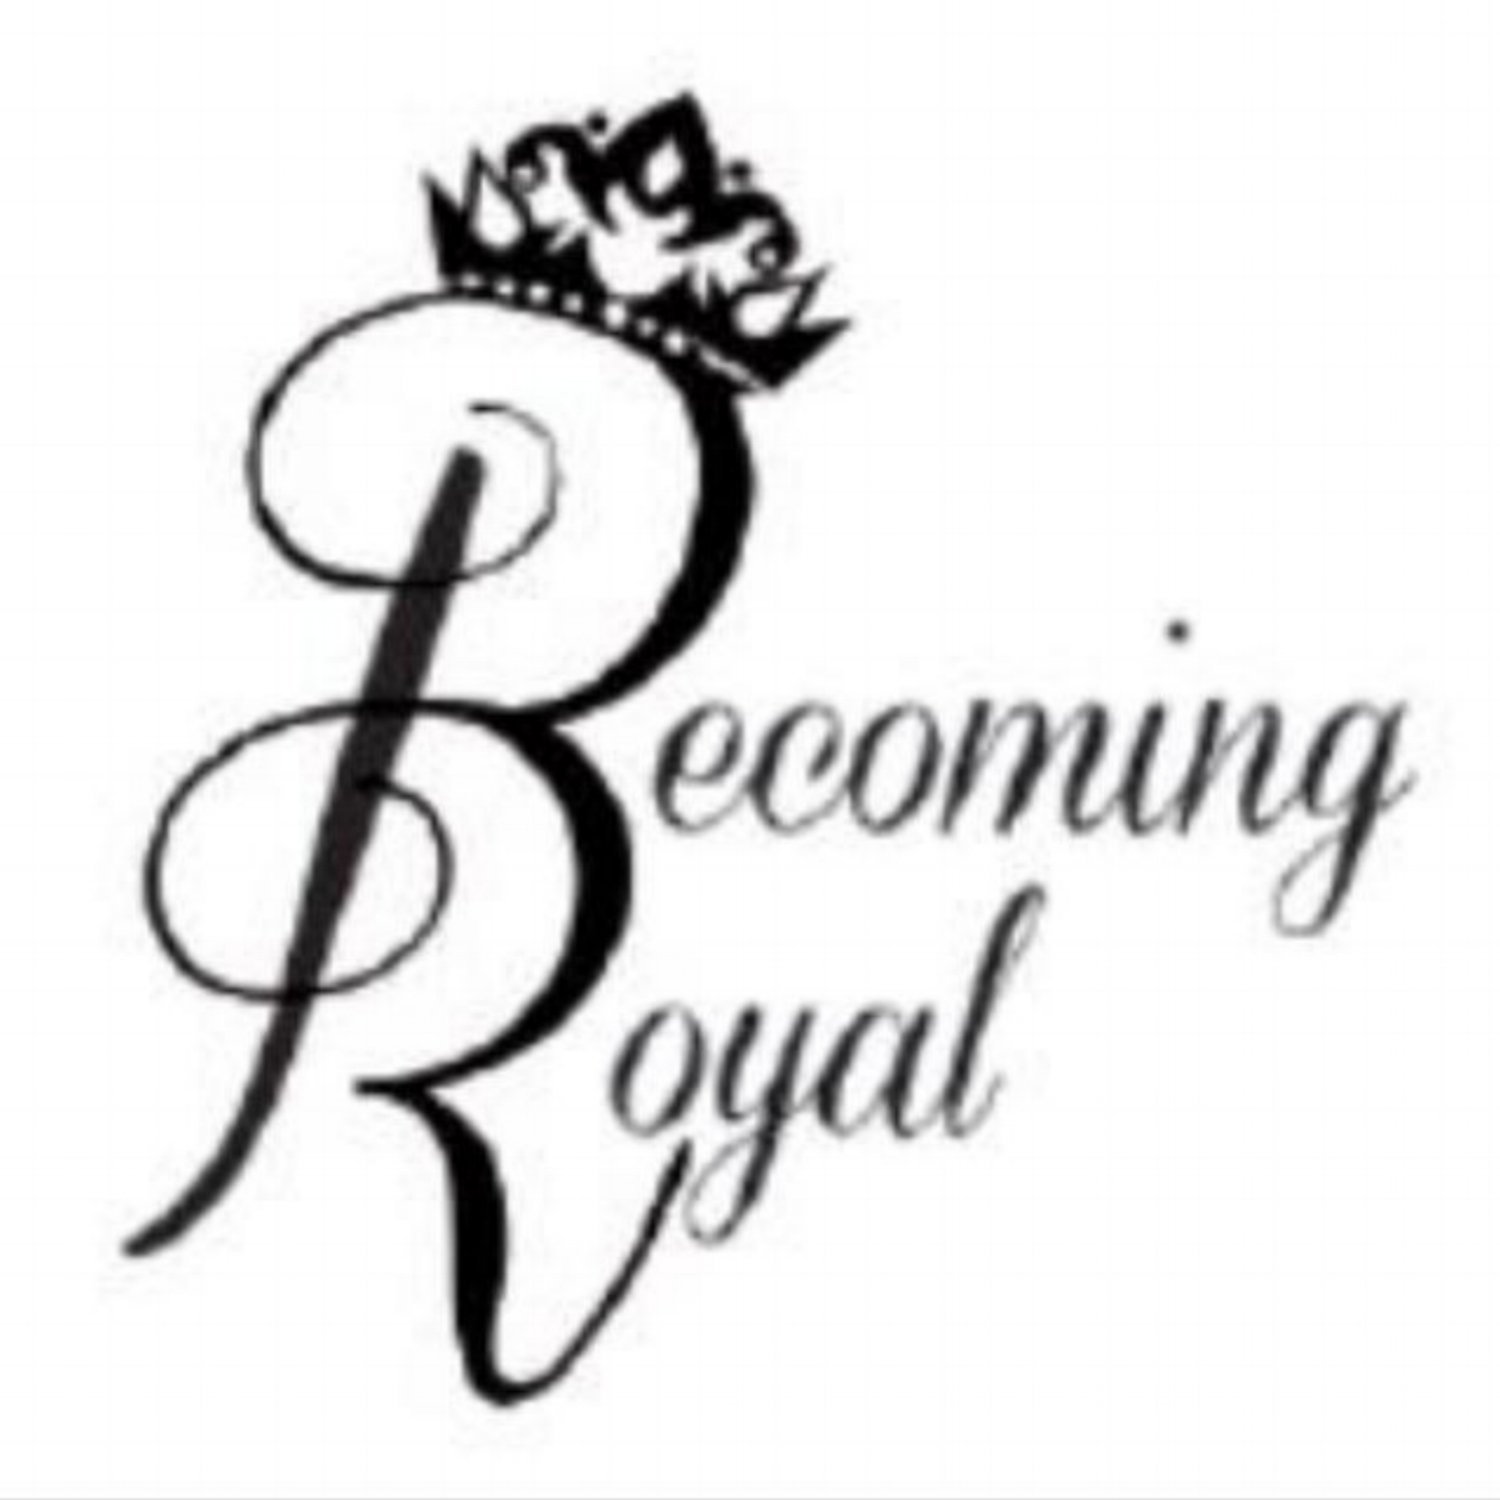 Becoming Royal